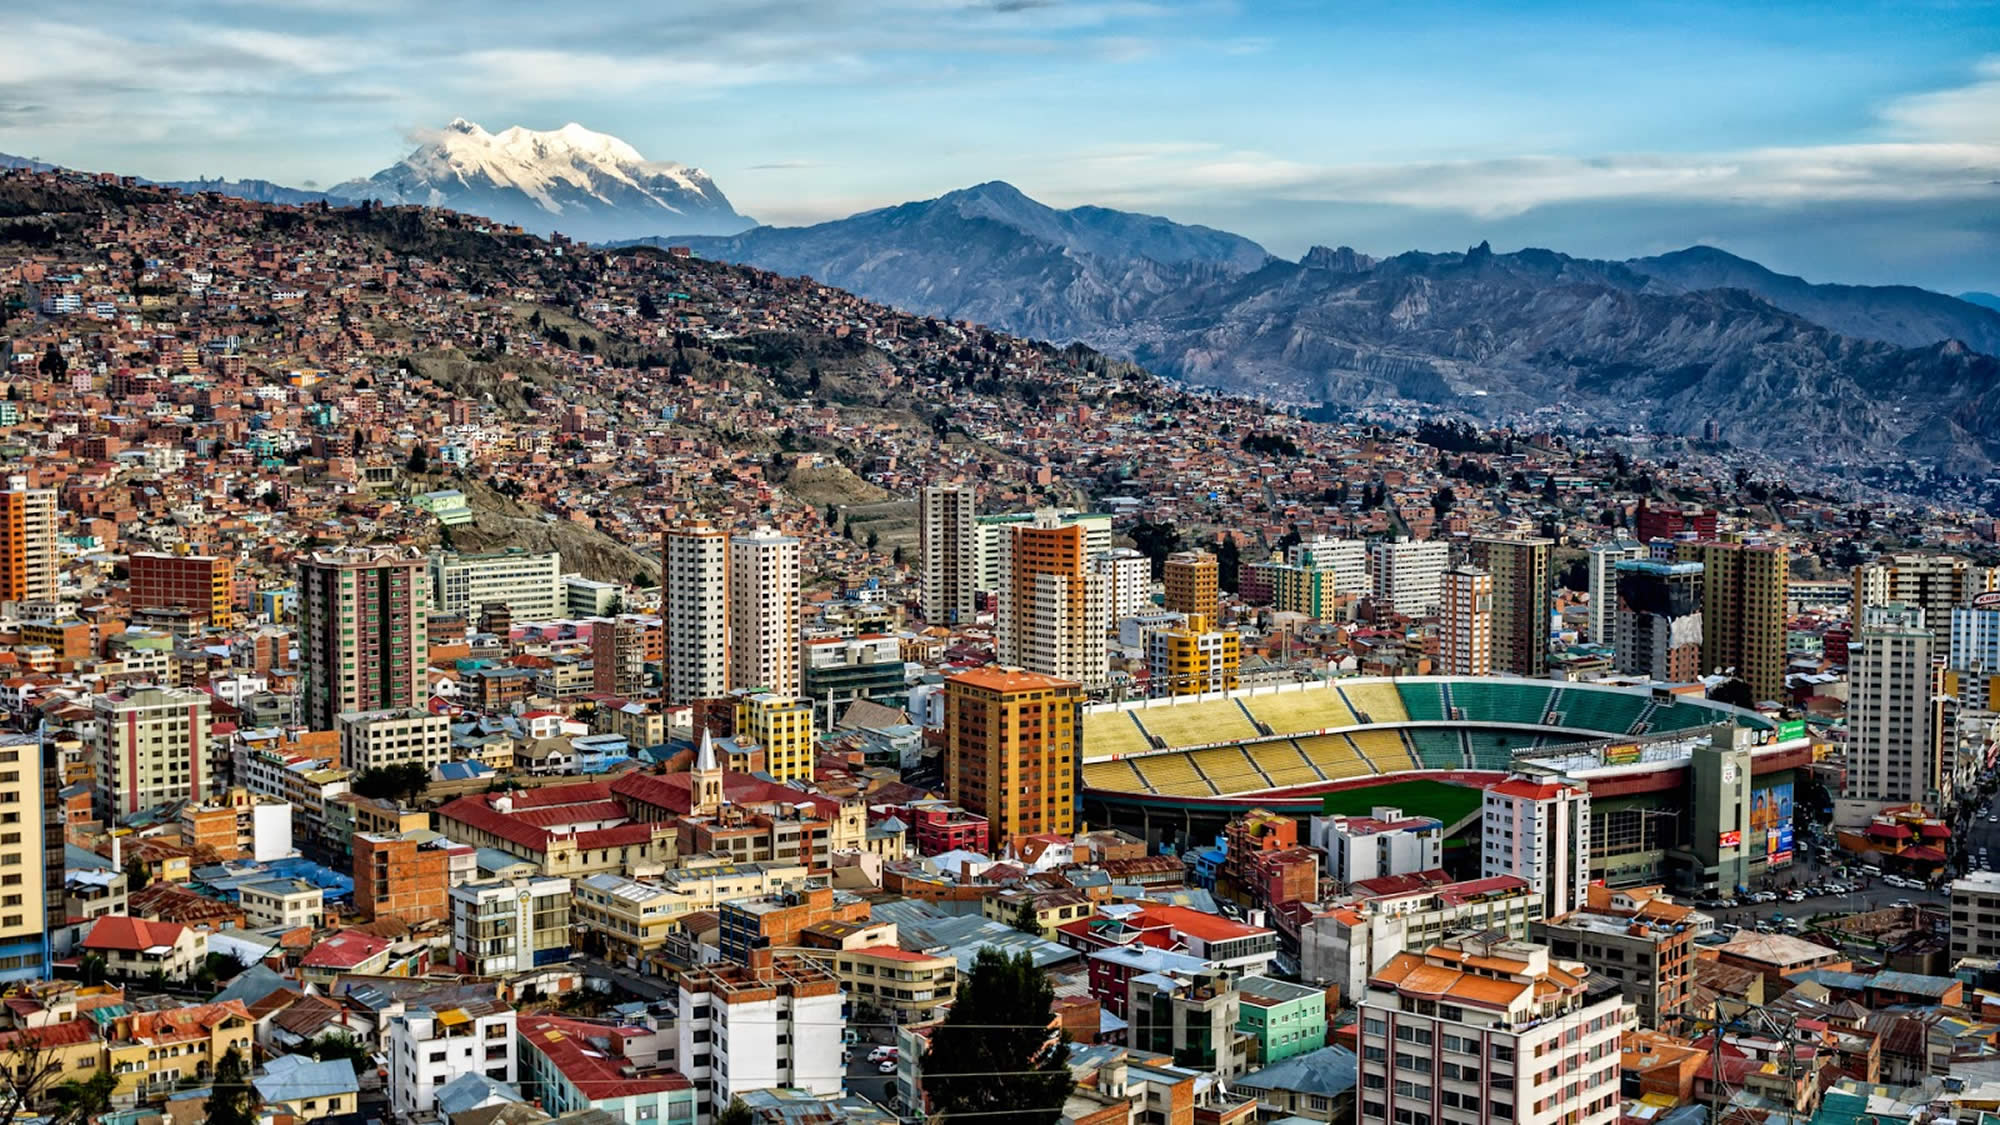 La Paz, City of Wonder